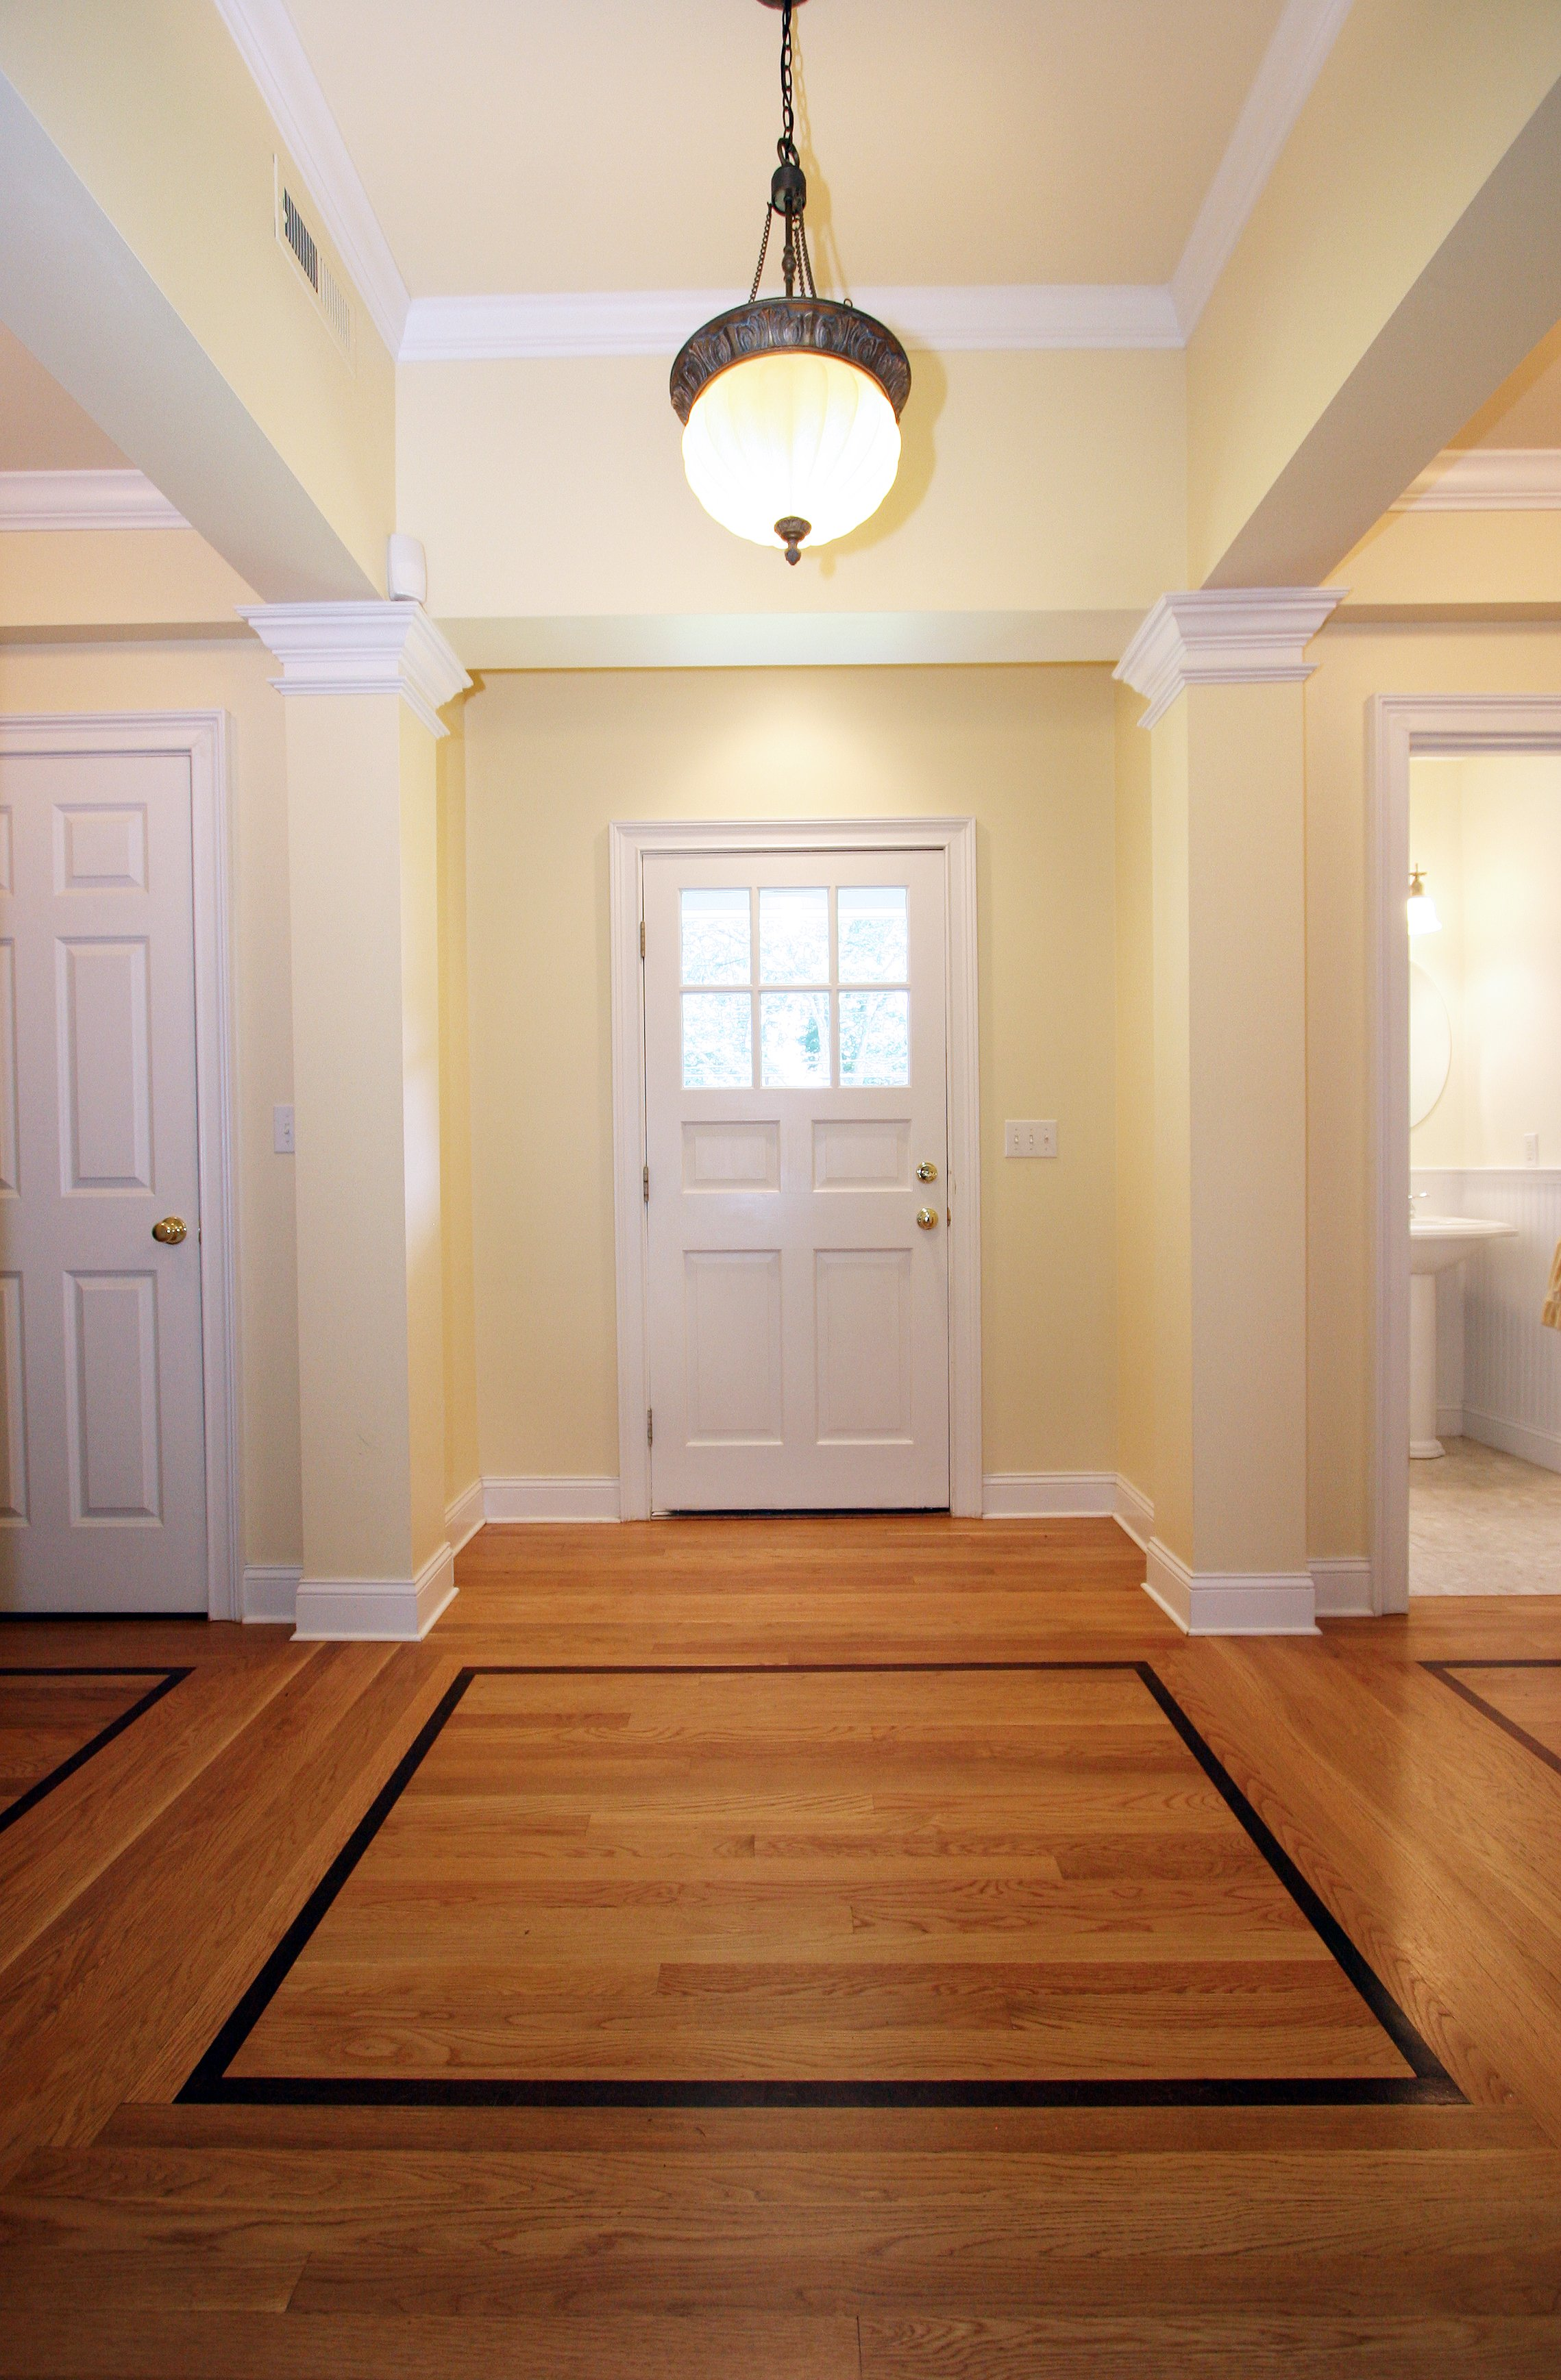 general contractor, hallway renovated by SIP Building Solutions general contractors - Westport, Fairfield, Stamford, Greenwich, Danbury CT